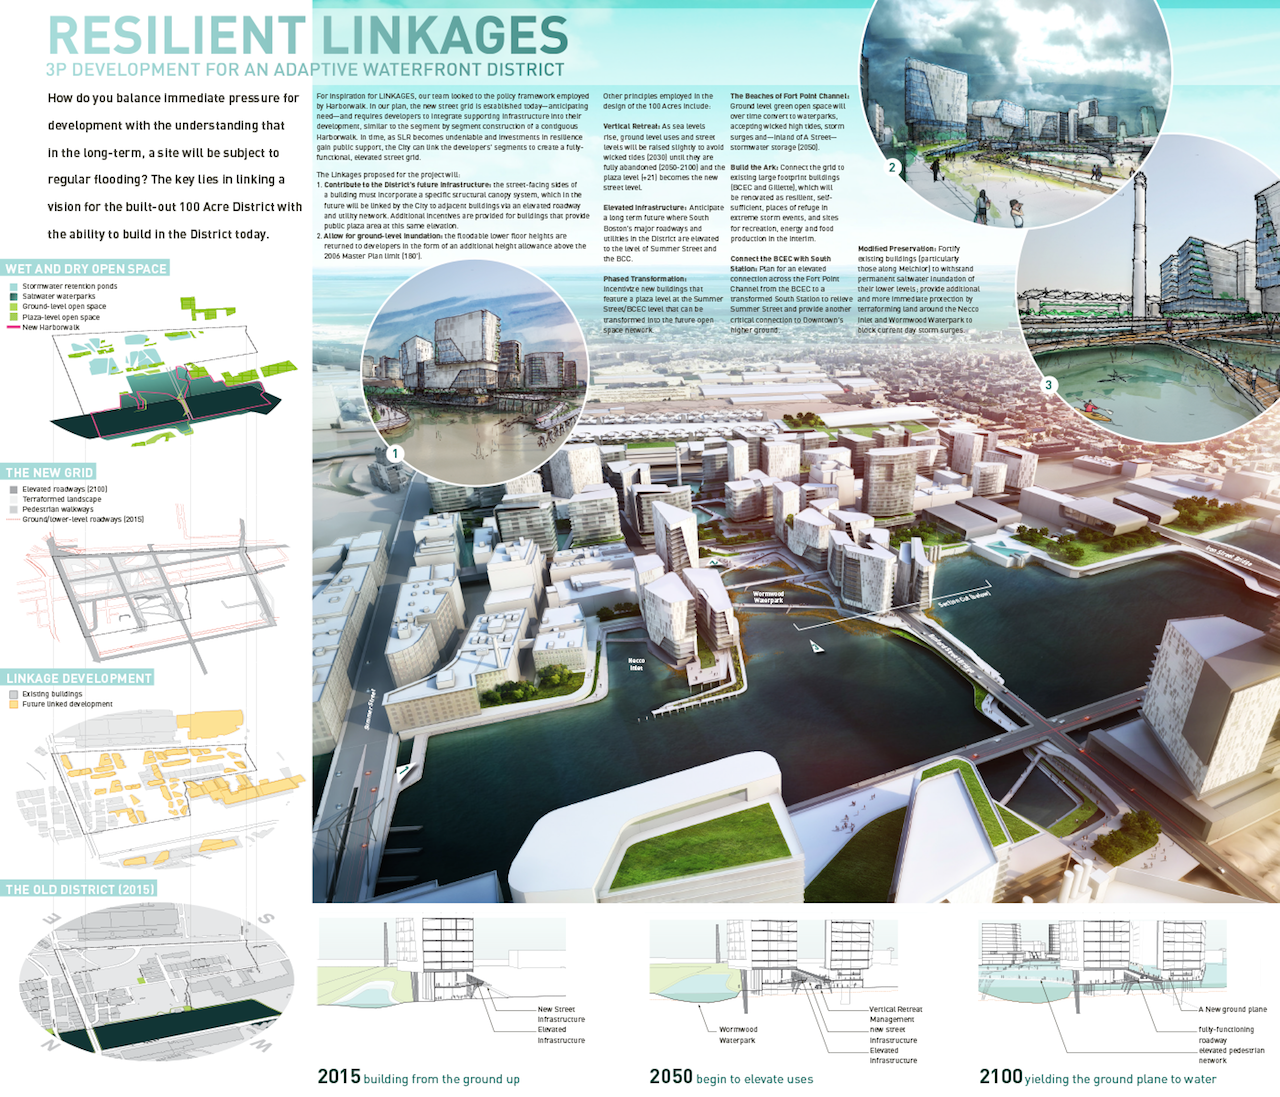 """""""Resilient Linkages"""" led by NBBJ – This proposal attempts to balance the immediate pressure for development in Fort Point with the long-term understanding that the area will be prone to regular flooding in the future. The plan would establish a new, elevated street grid and require developers to integrate supportive infrastructure for sea level rise into their projects, which could then be linked to form fully-functional, neighborhood-scale infrastructure."""